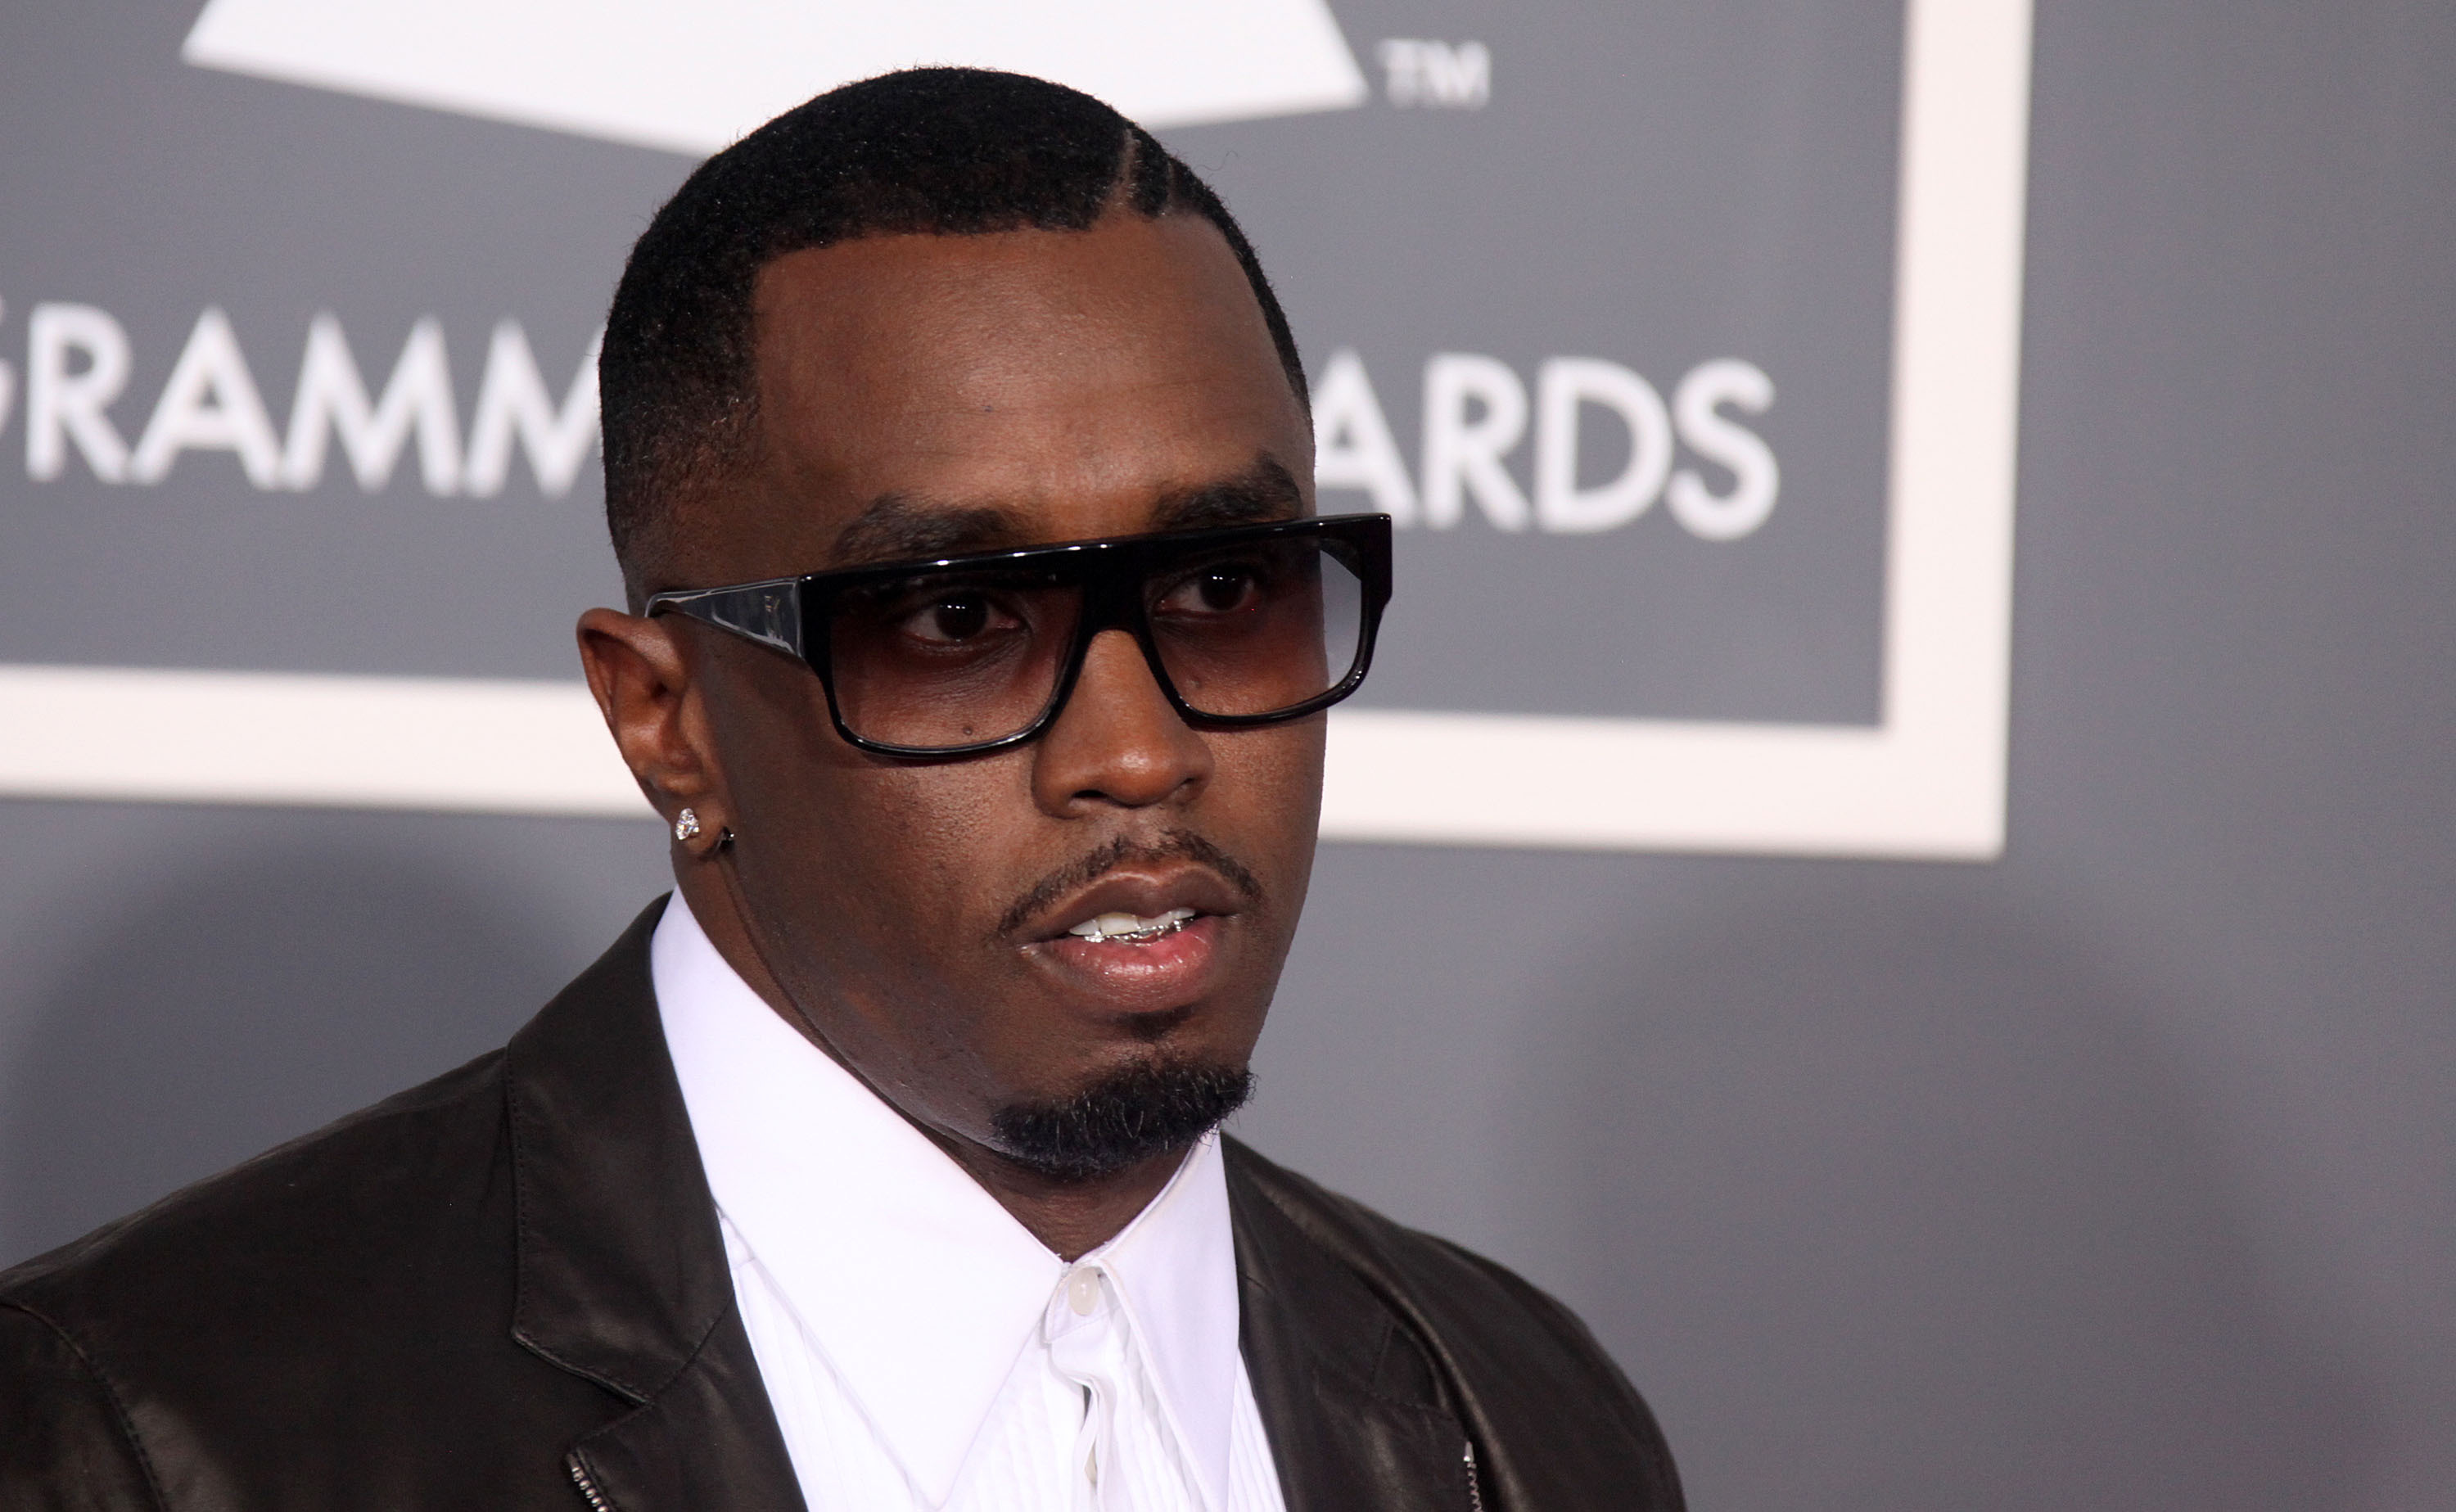 A Dancer At Diddy's Party Catches On Fire!